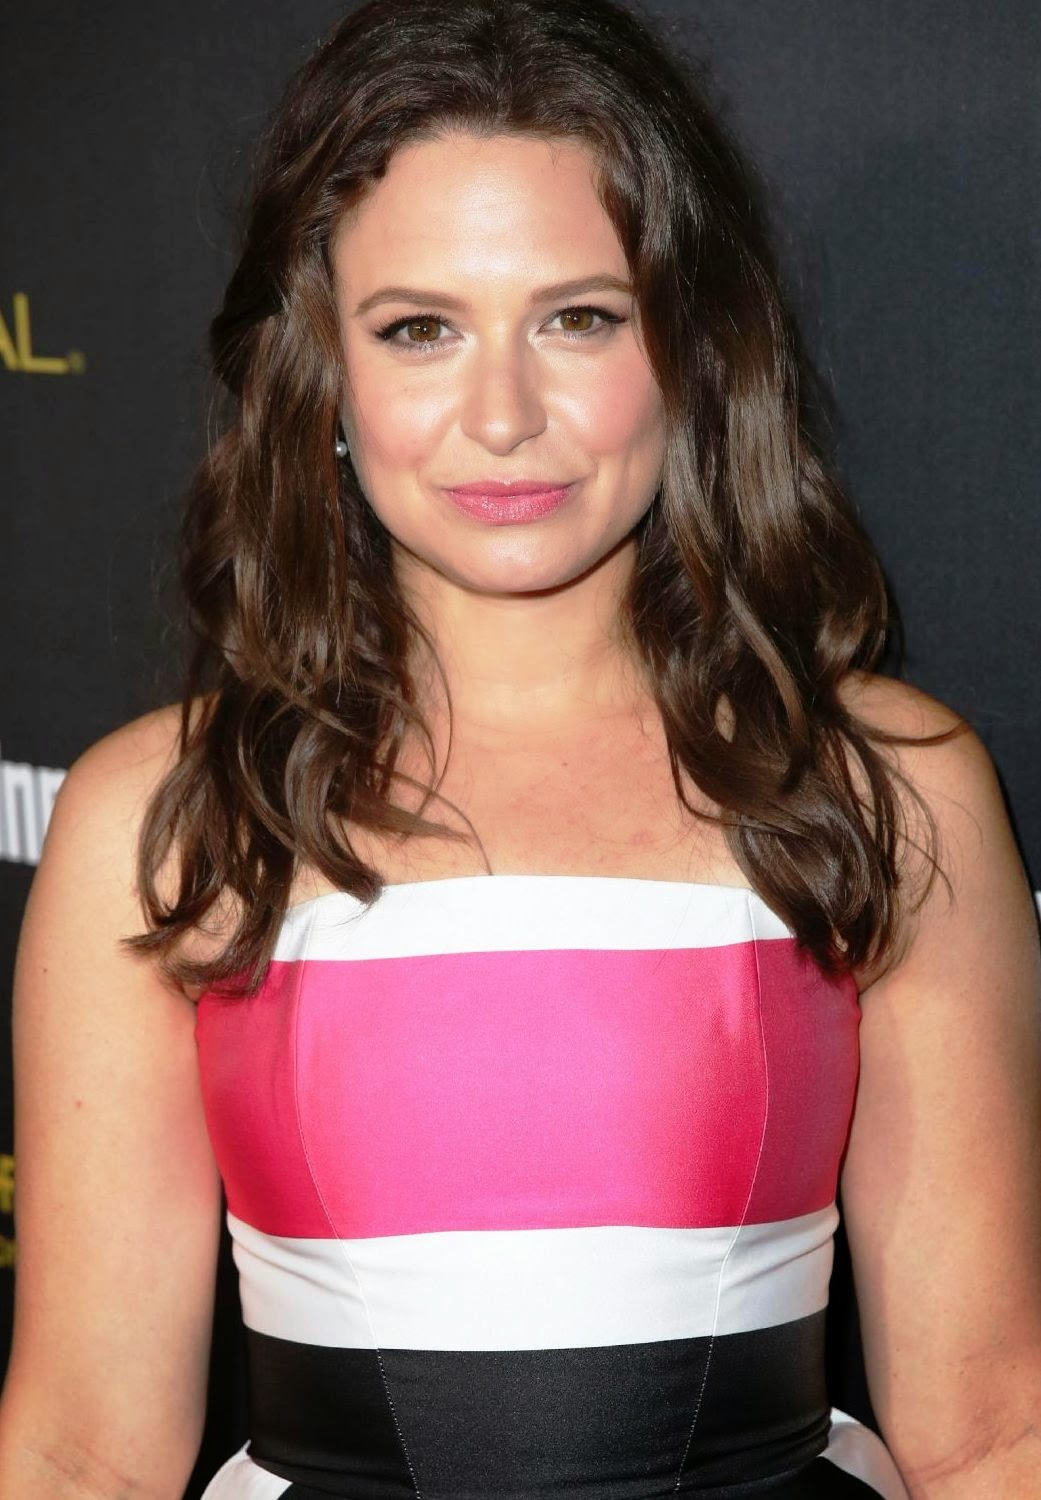 Katie Lowes naked (87 fotos) Video, 2020, swimsuit